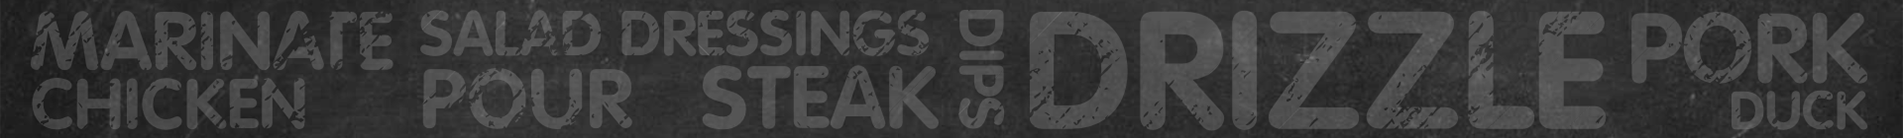 word_banner_dressings